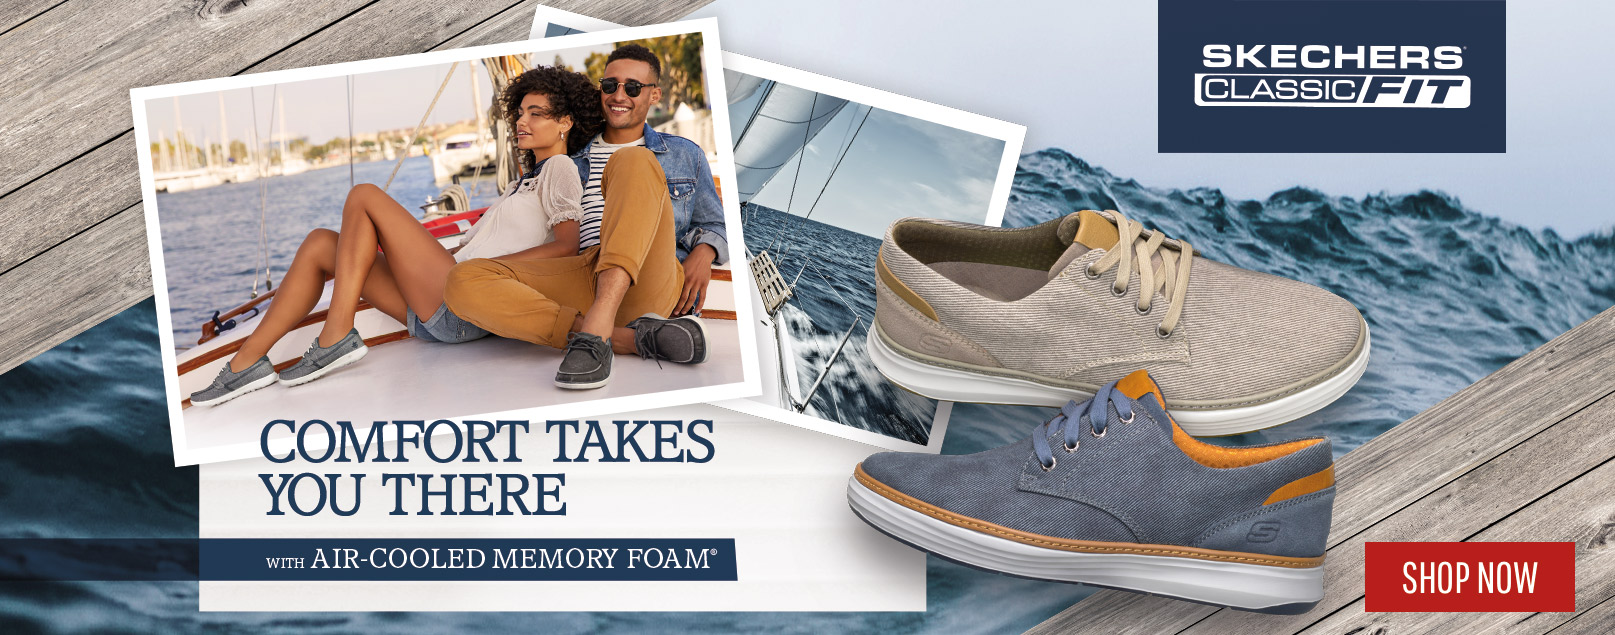 Get on board with the most comfortable boat shoe collection yet from Skechers USA Classic Fit.  A collection of boat oxfords and loafers in soft canvas and rich leathers that give you yacht-ready style.  Selected shoes are machine washable.